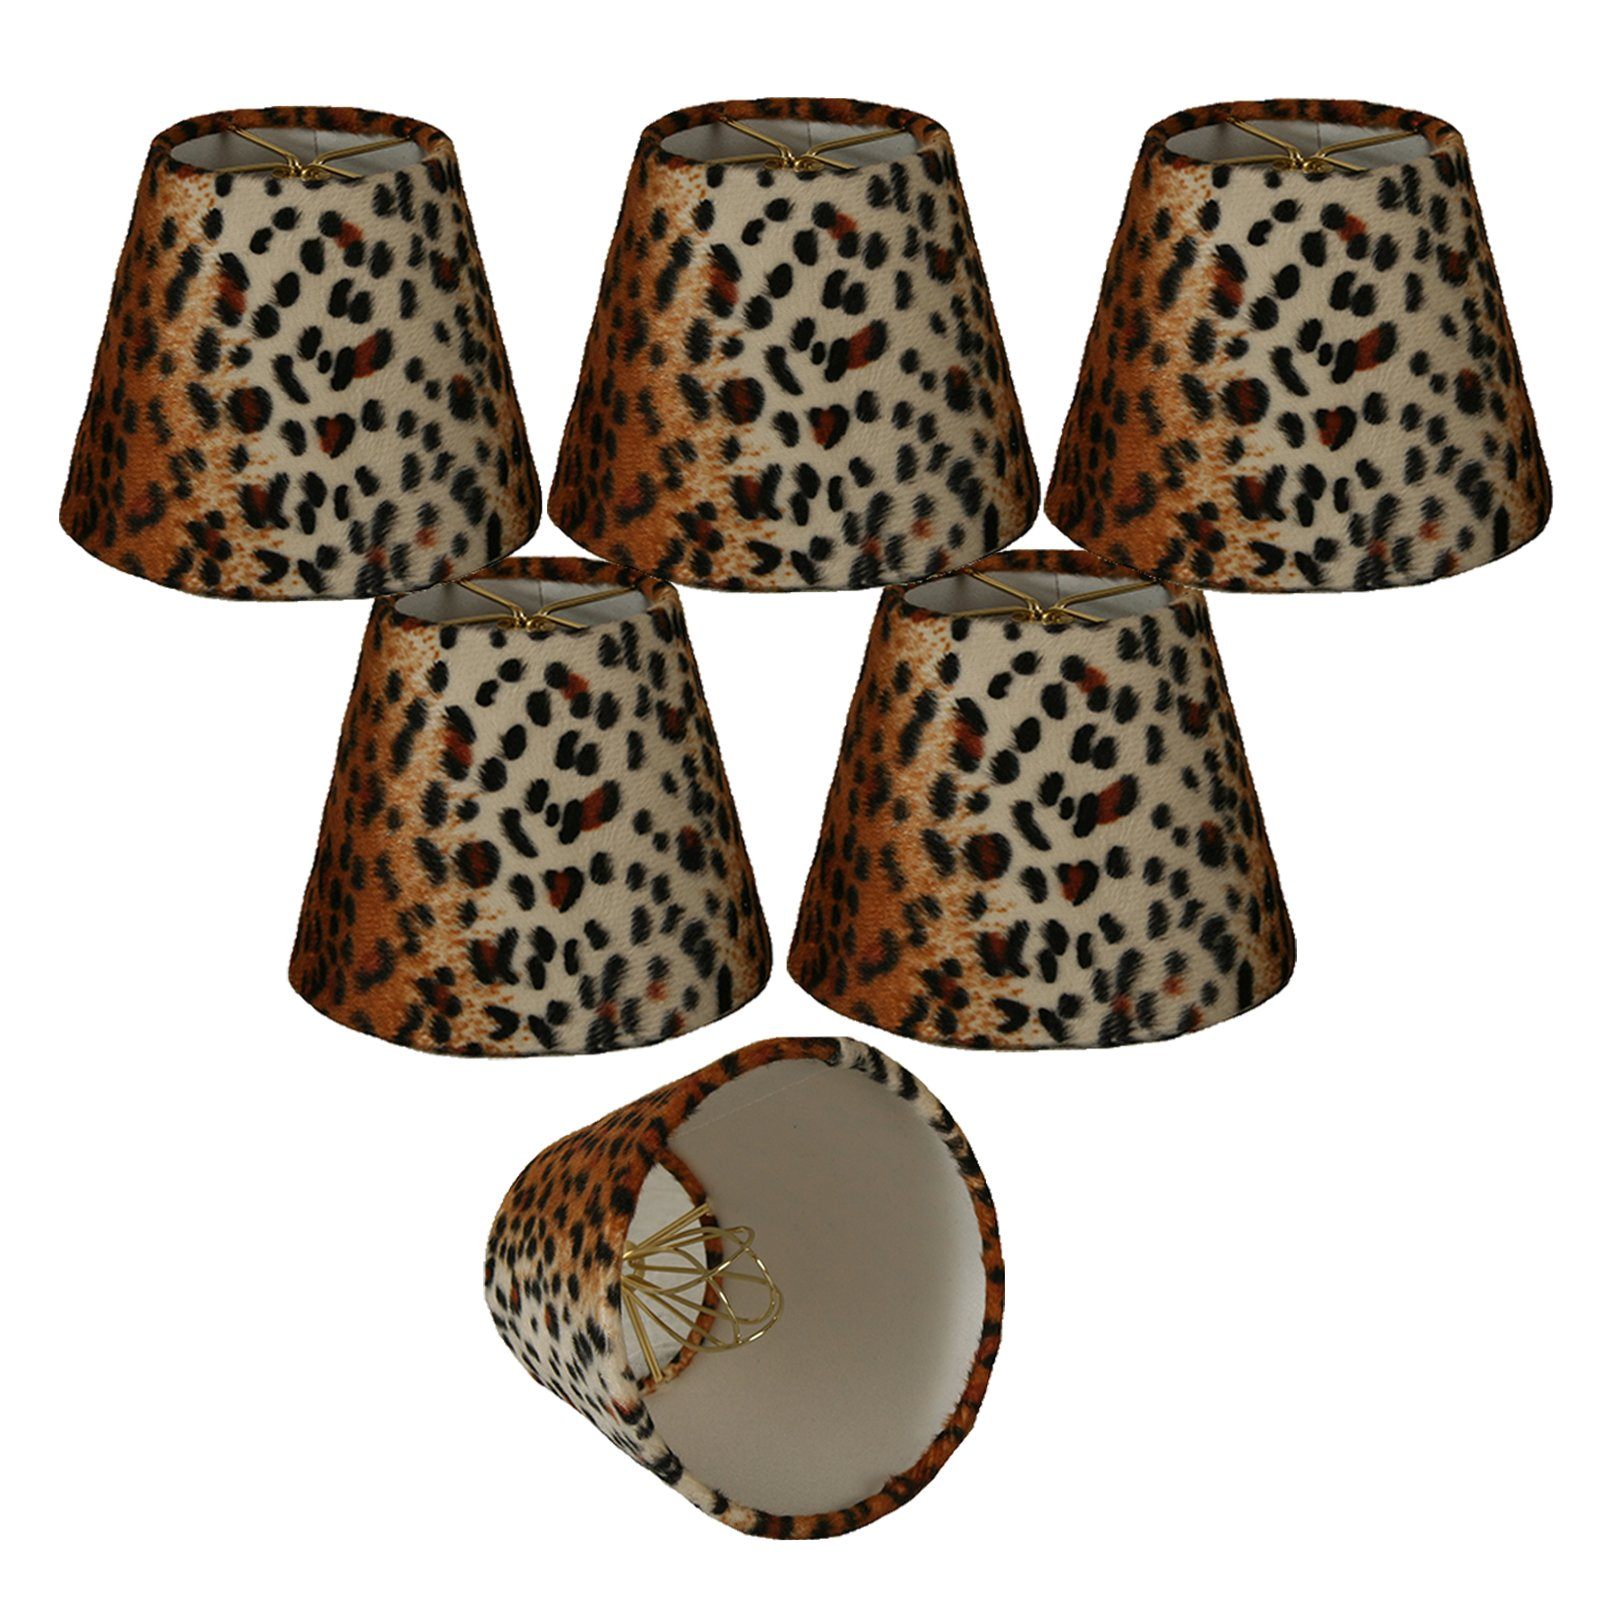 Royal Designs 5'' Black & Brown Small Leopard Print Chandelier Lamp Shade, Set of 6, 3 x 5 x 4.5 (CS-958-5-6) by Royal Designs, Inc (Image #1)